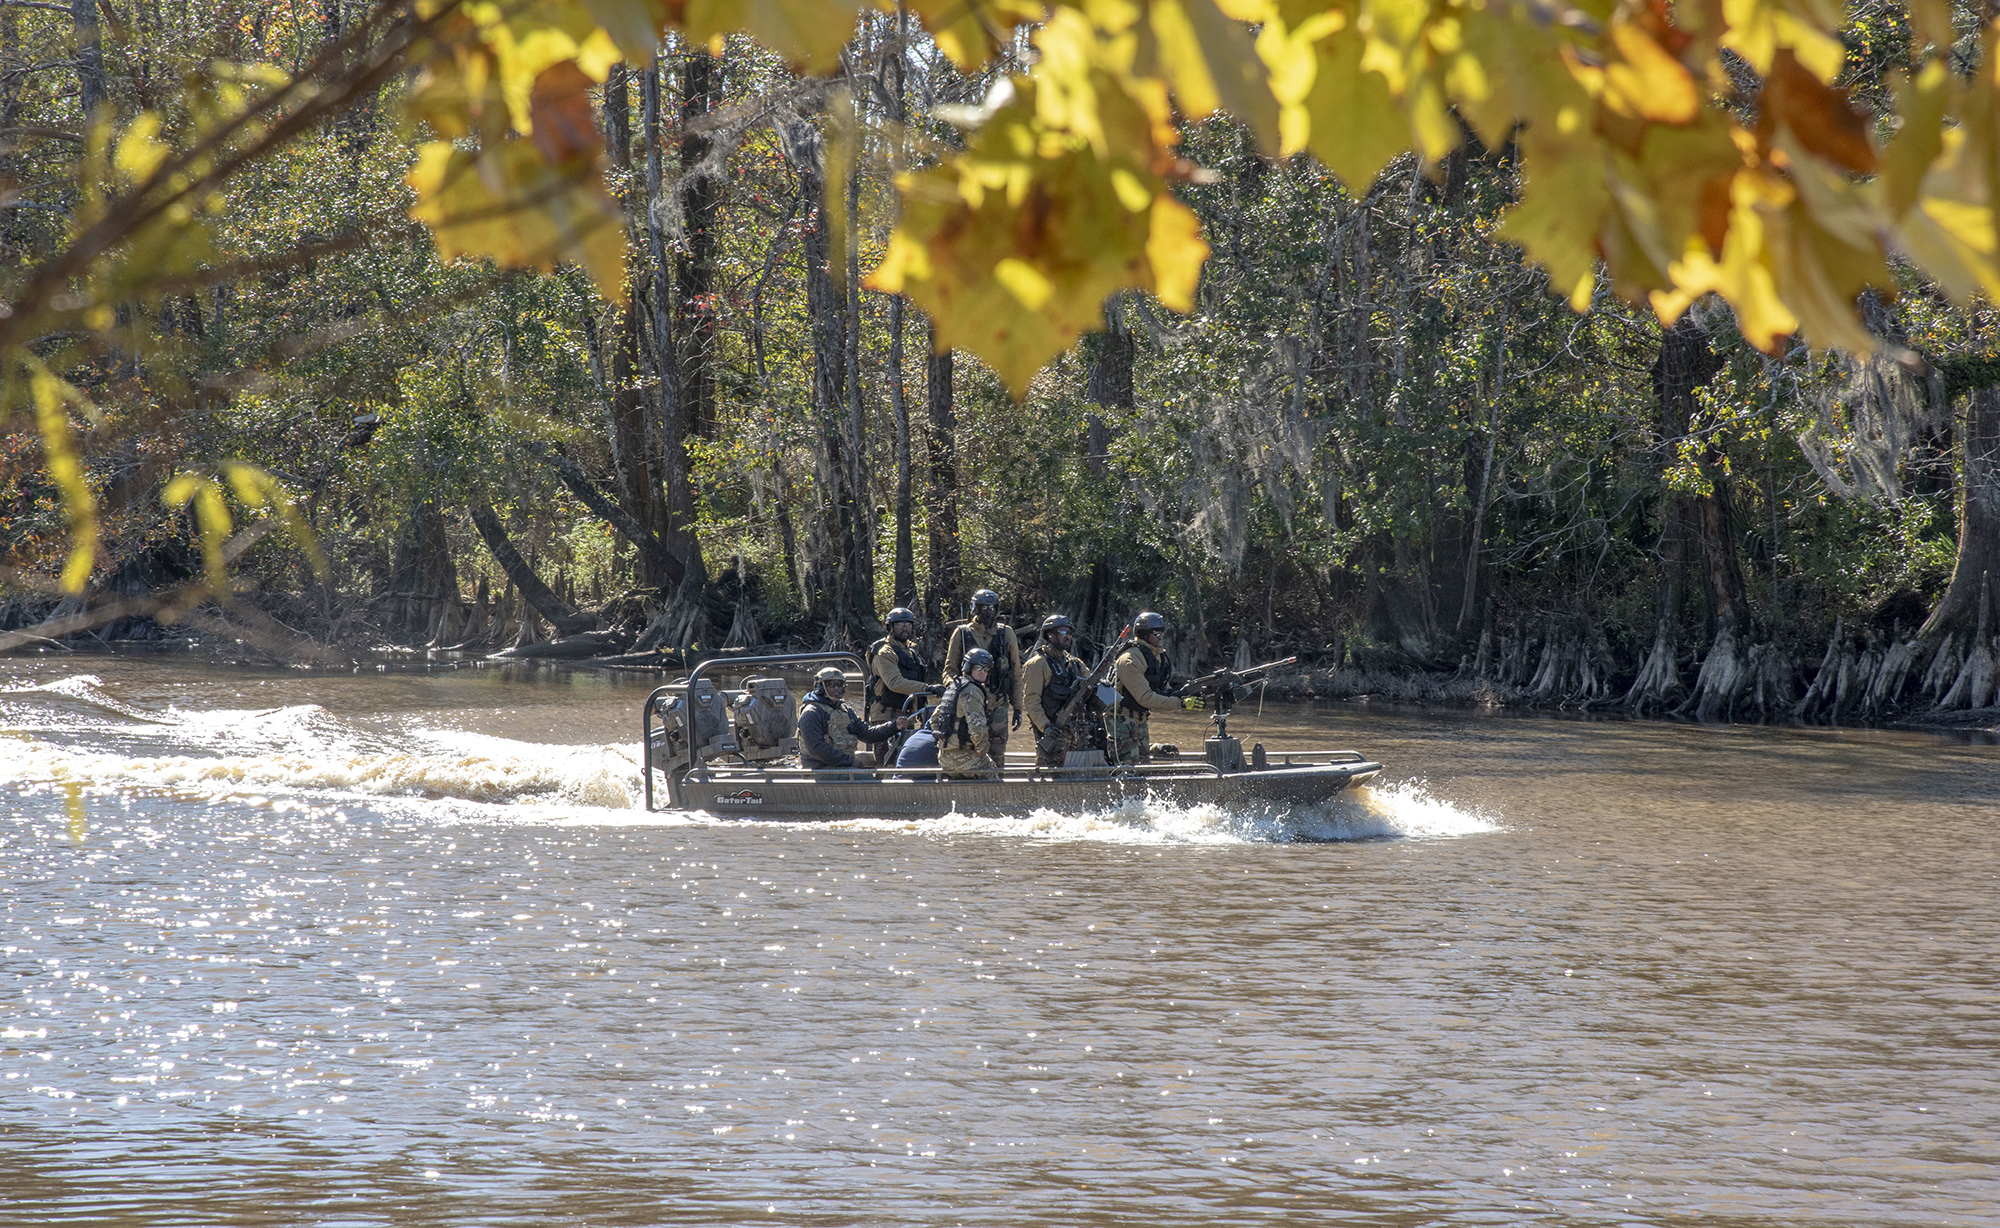 Naval Small Craft Instruction and Technical Training School students from Africa Command participate in a Patrol Craft Officer Riverine training exercise on the Pearl River near the John C. Stennis Space Center in Mississippi, Dec. 2, 2020. (Michael Williams/Navy)